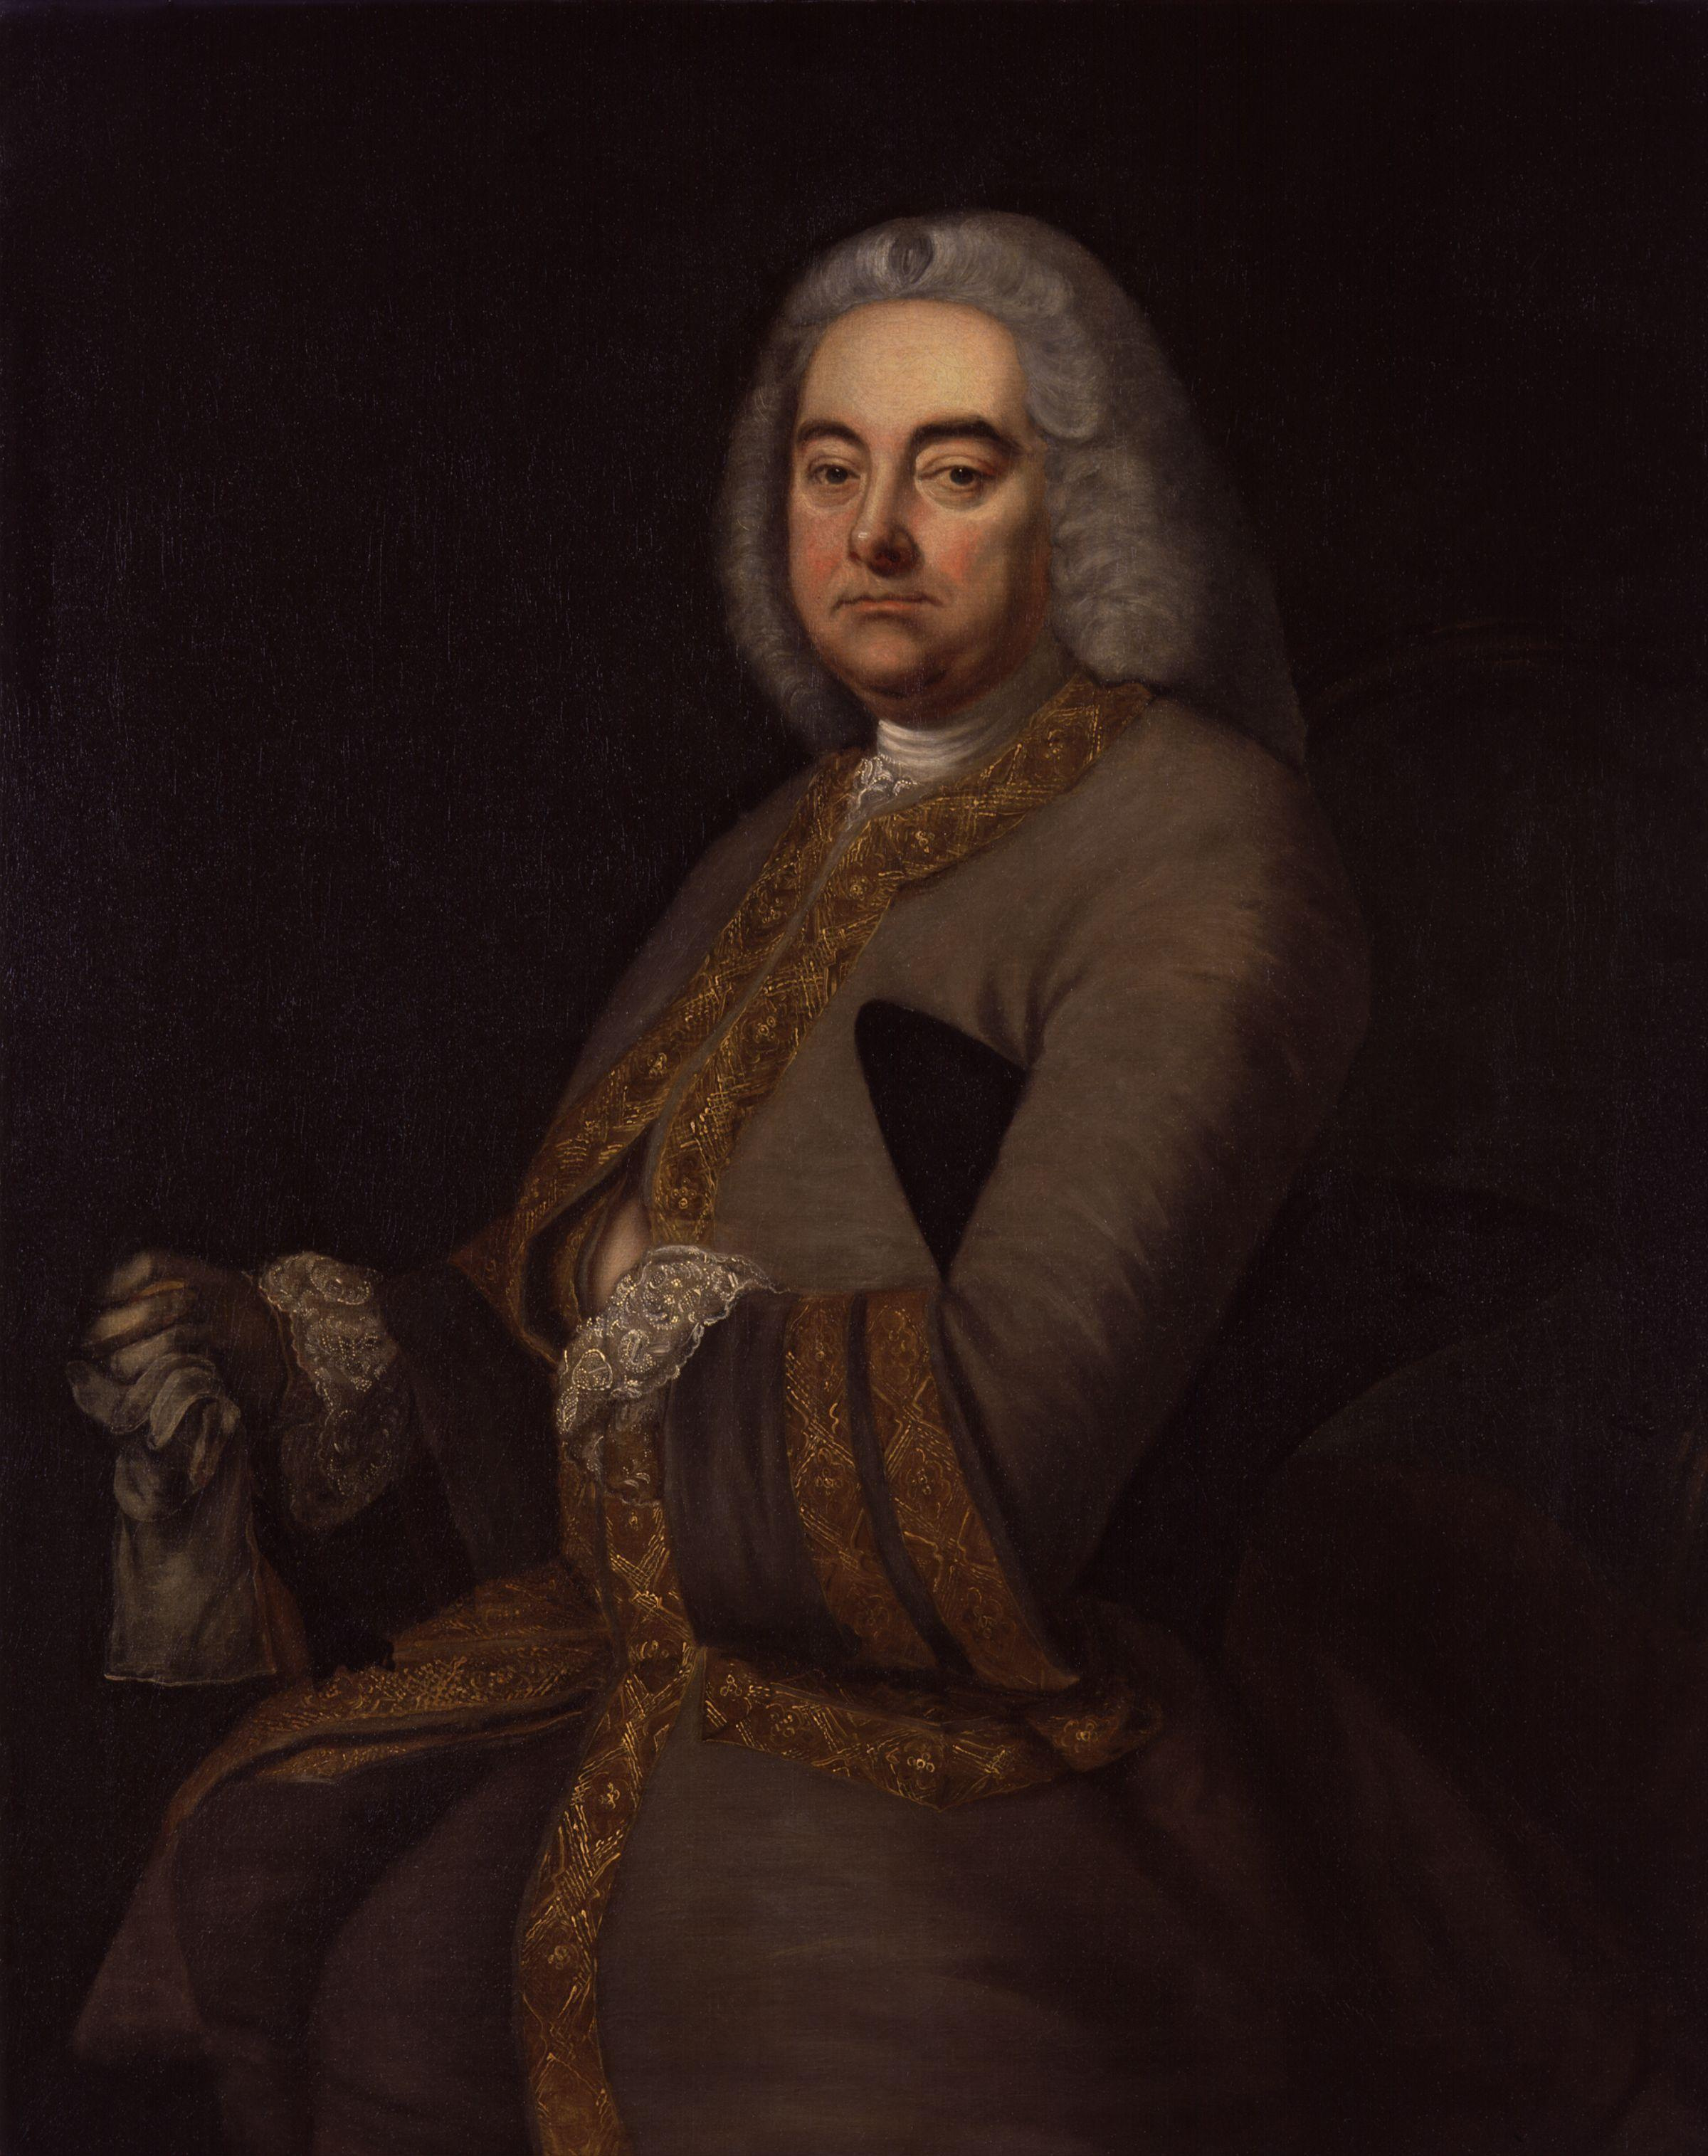 Description george frideric handel by thomas hudson